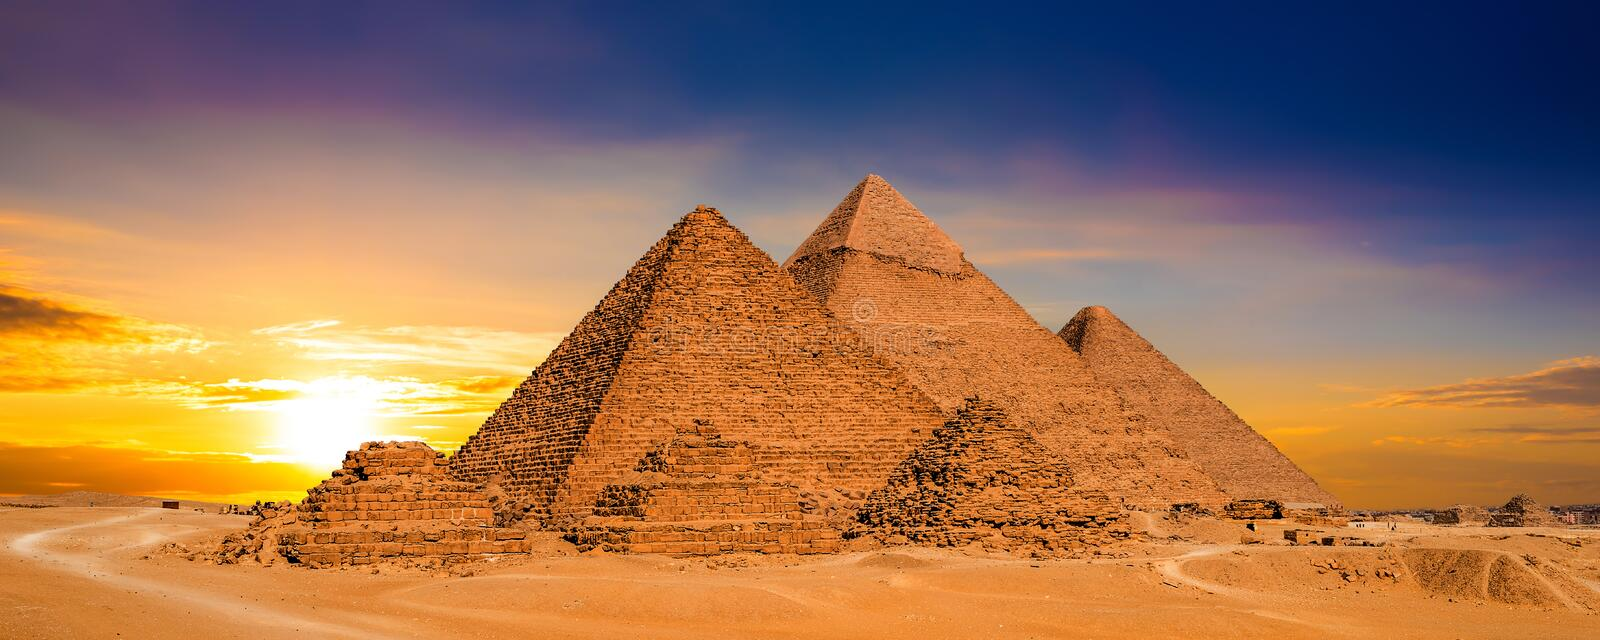 Zonsondergang in Egypte royalty-vrije stock fotografie